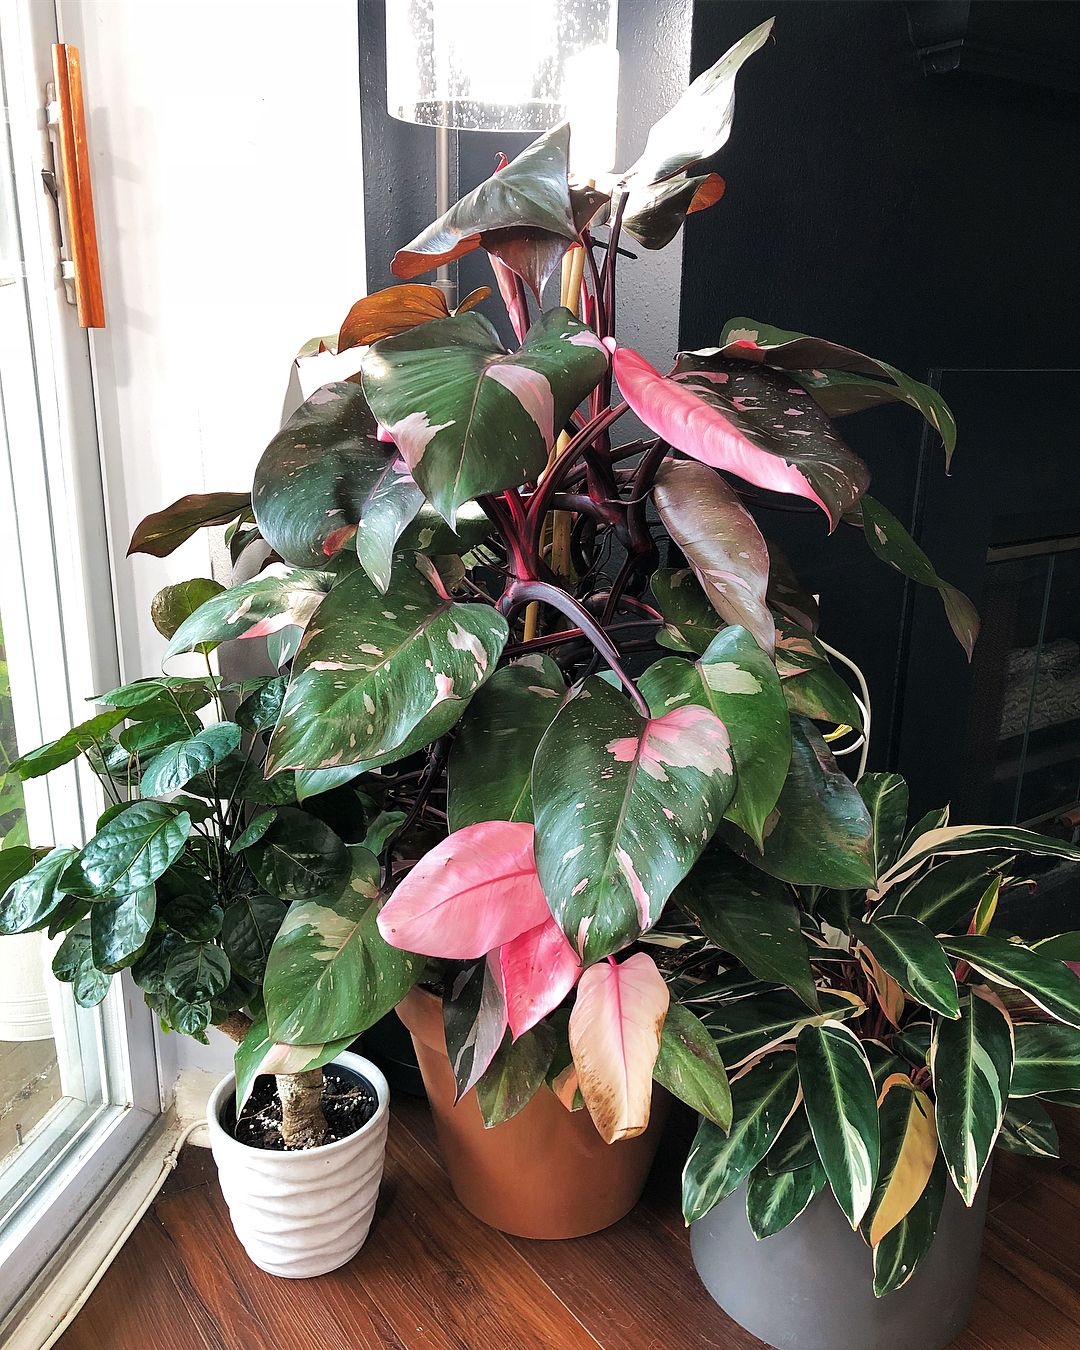 philodendron pink princess planted plants house plants houseplants. Black Bedroom Furniture Sets. Home Design Ideas